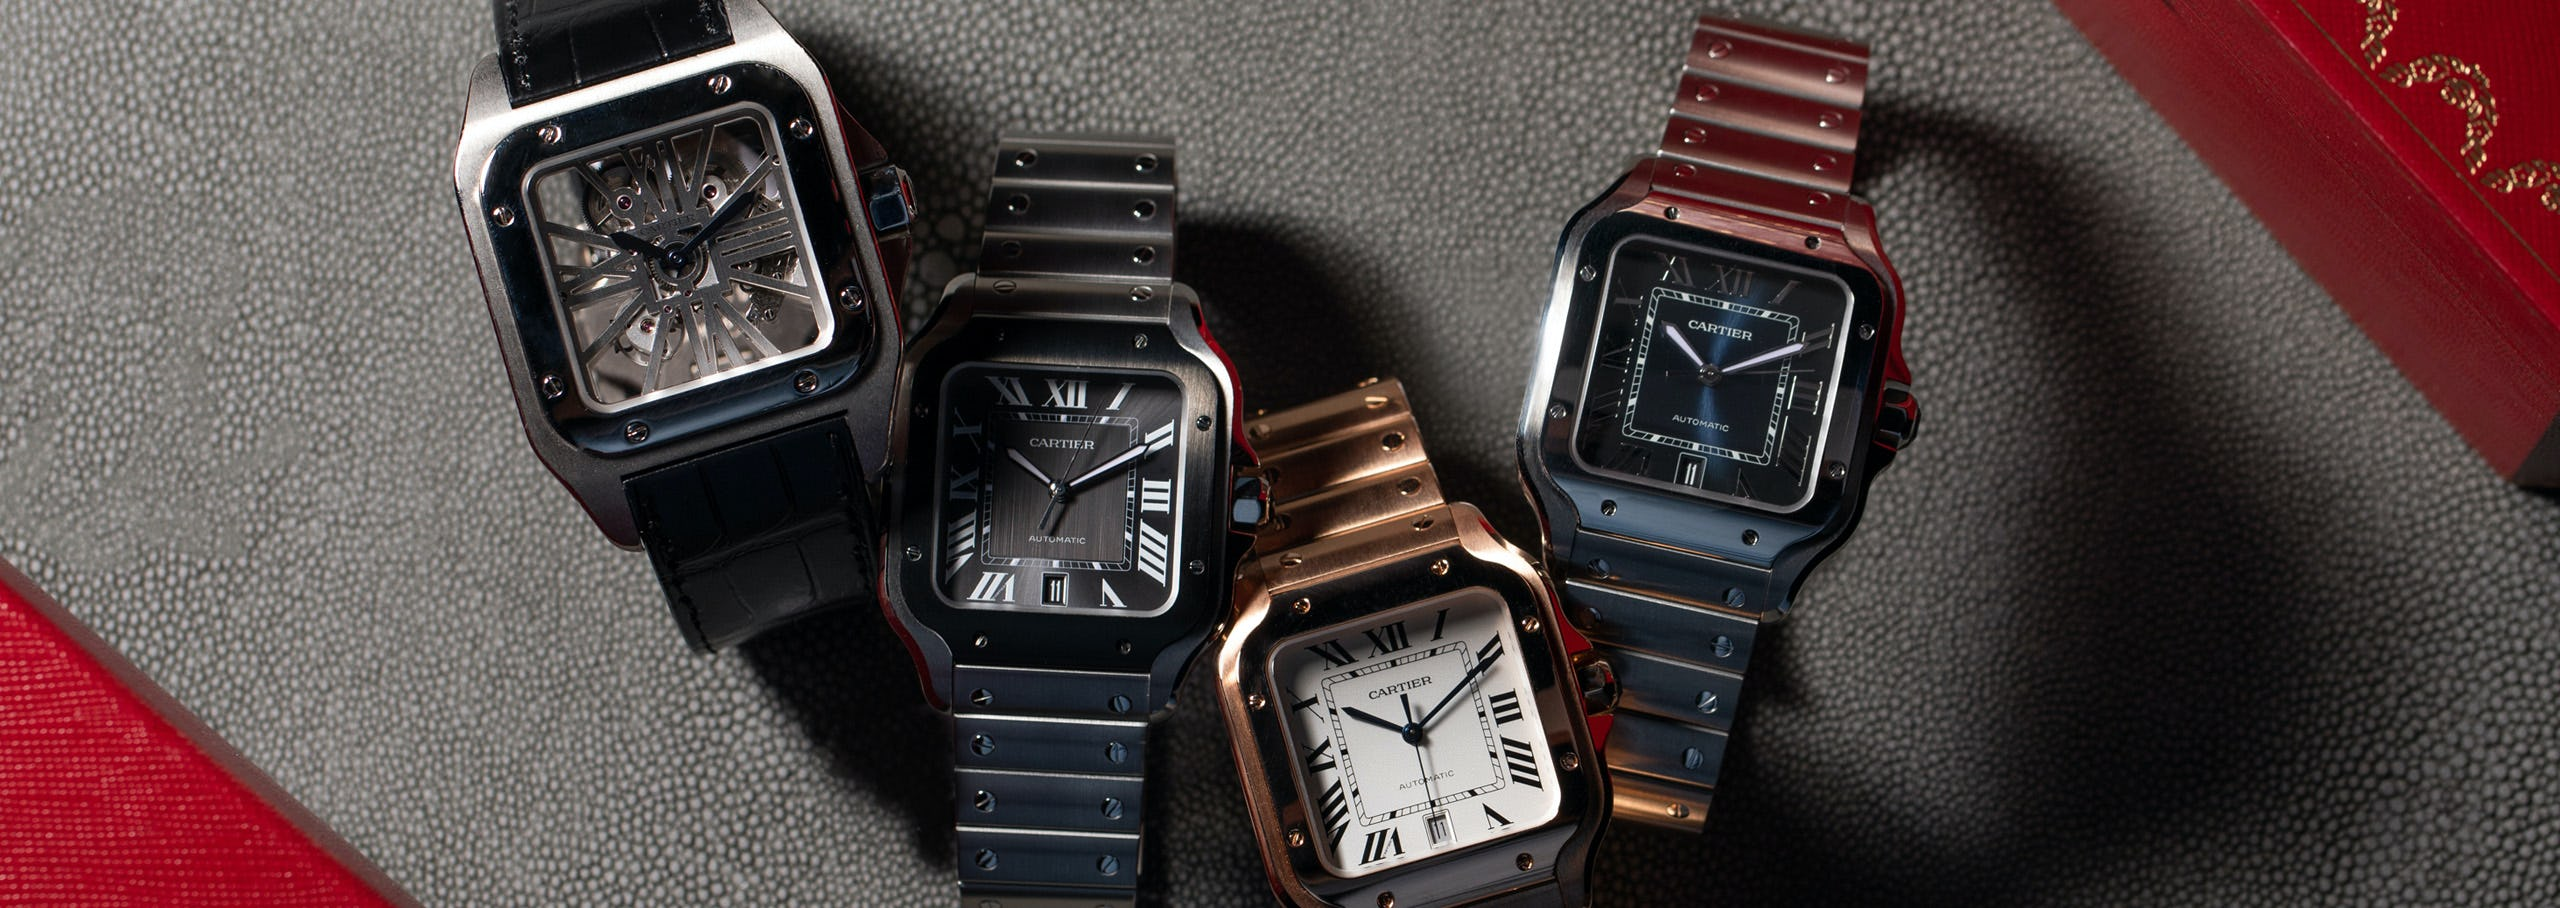 Cartier Santos: The Best Watch for Your Money